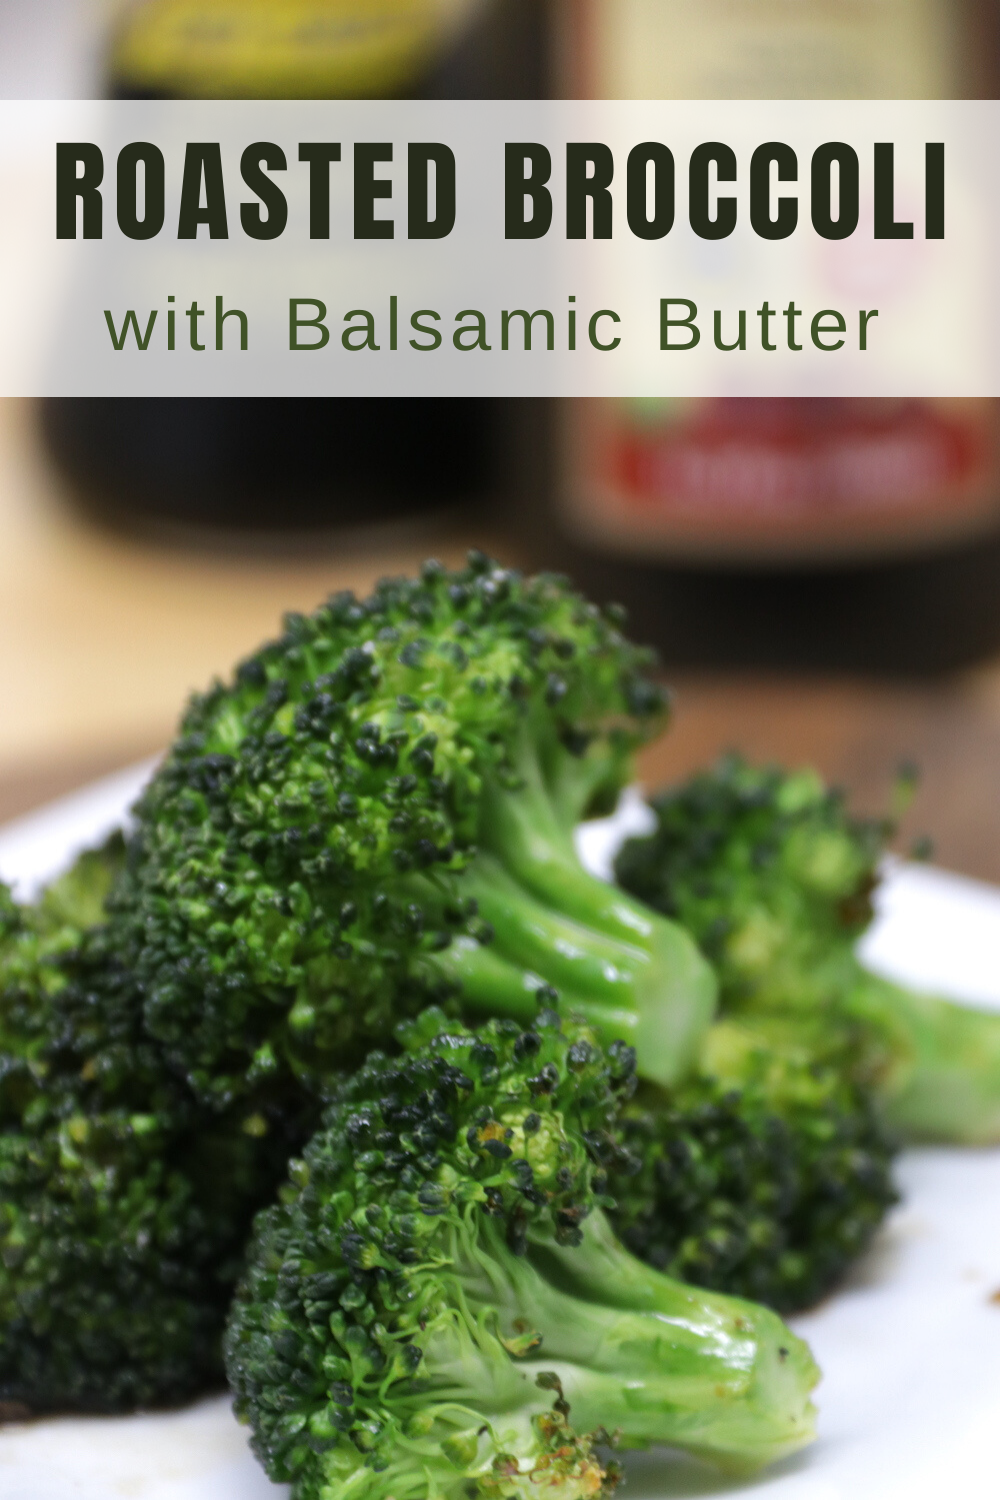 Roasted Broccoli with Balsamic Butter Sauce